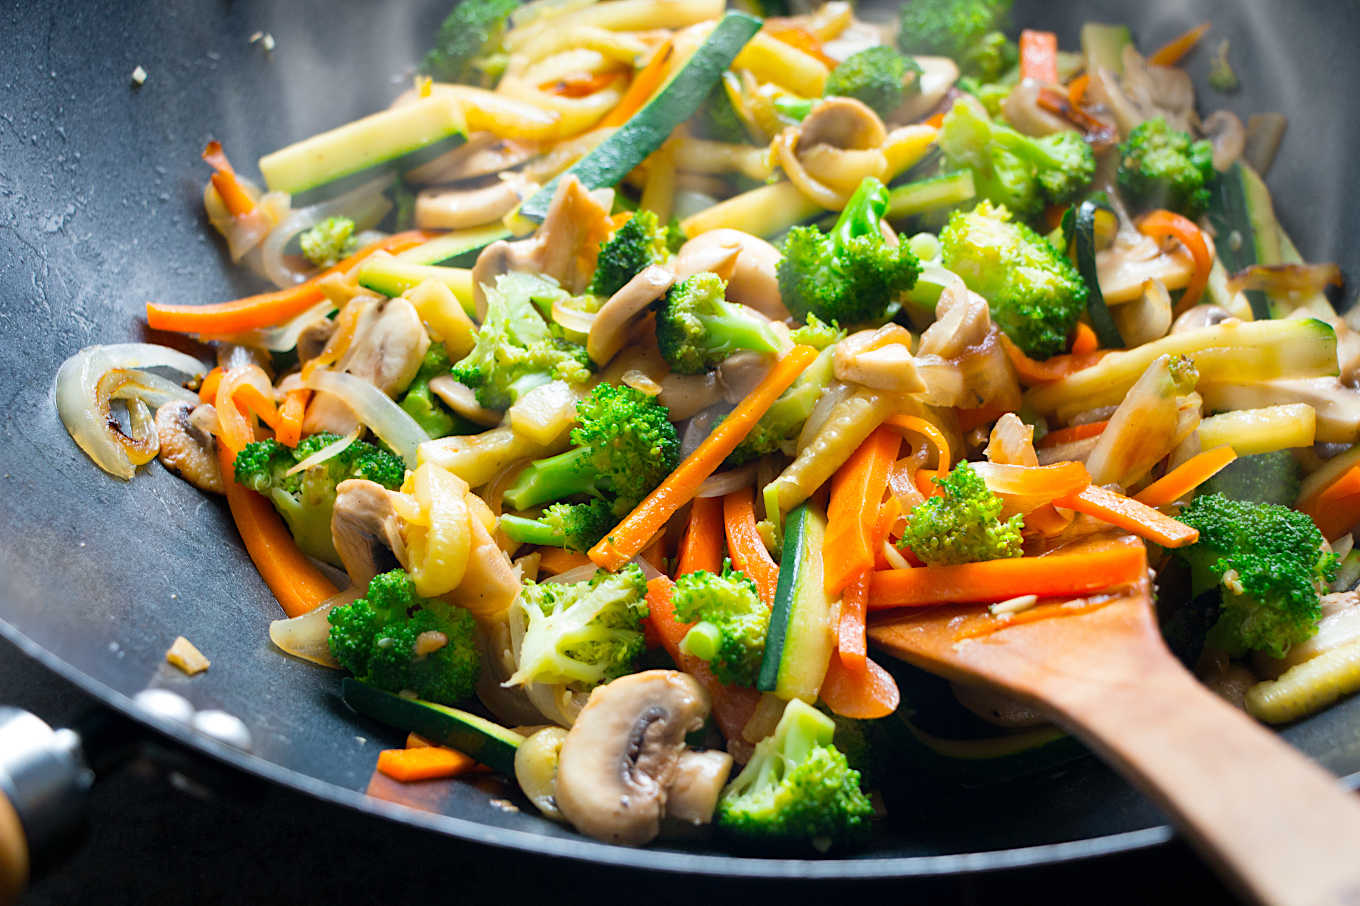 healthy vegetable recipes for weight loss